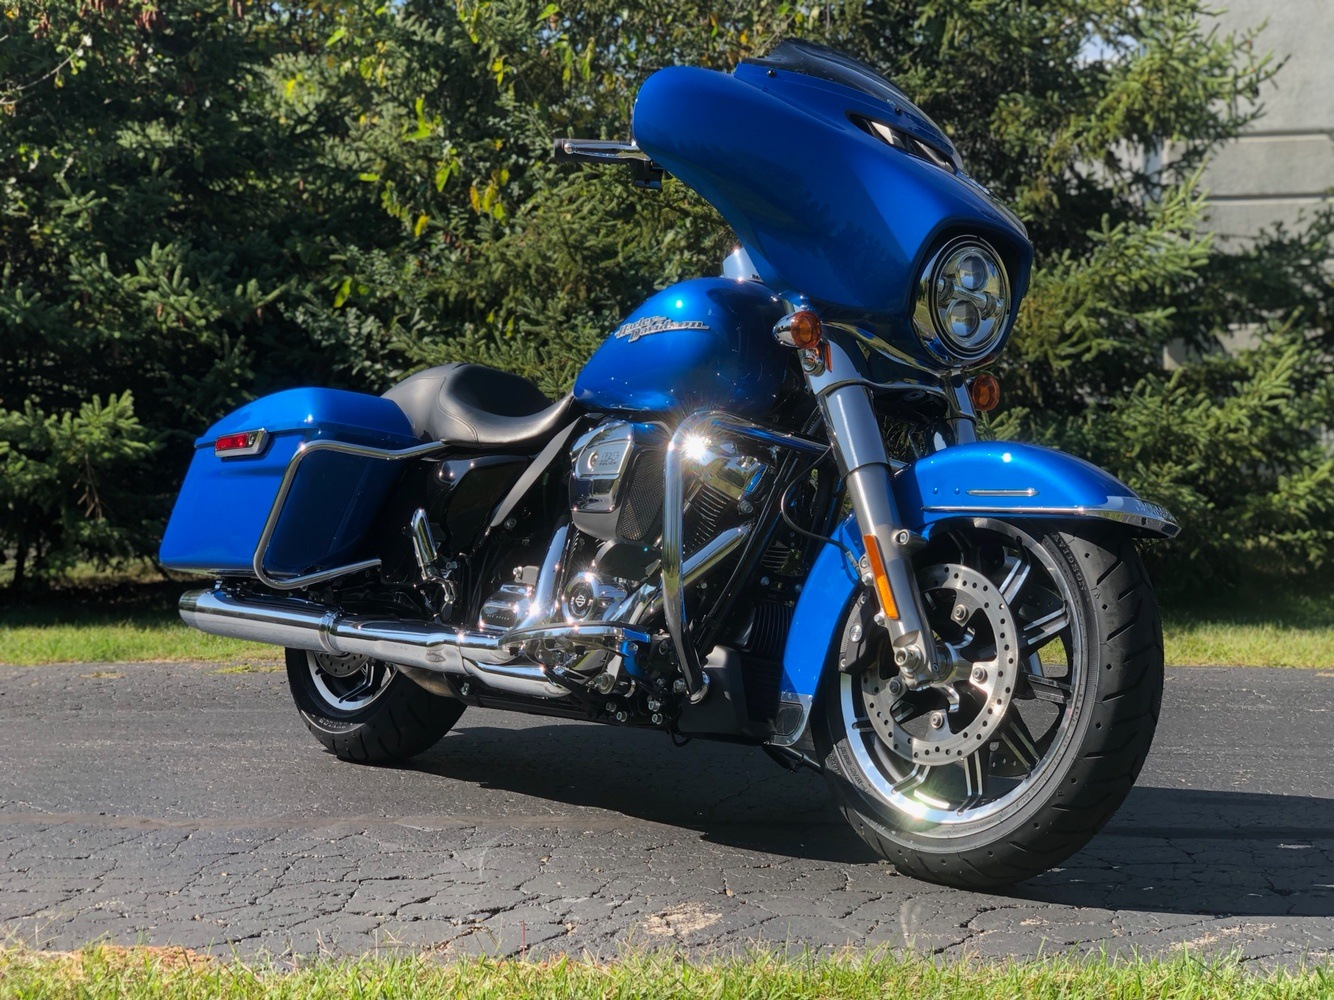 2020 Harley-Davidson Electra Glide Standard in Portage, Michigan - Photo 2